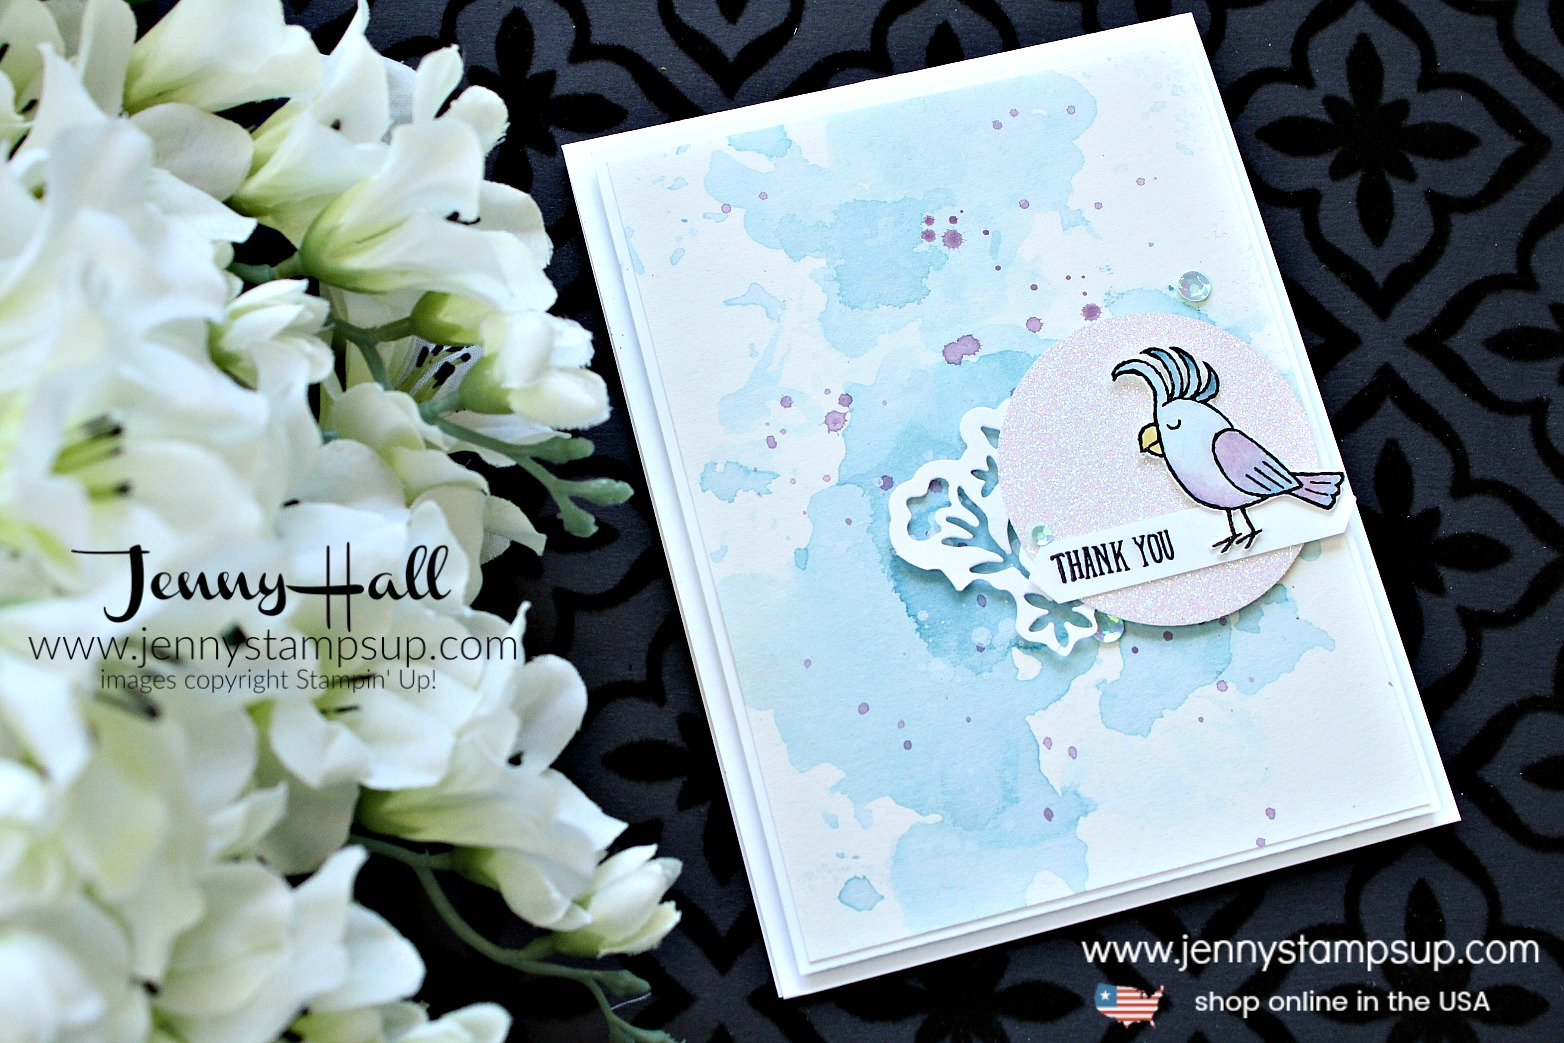 Bird Banter Moonlight card created by Jenny Hall at www.jennyhalldesign.com for #cardmaking #stamping #stampinup #birdbanter #birdstamp #watercolorsmooshing #detailedfloralthinlits #moonlight #watercolorpainting #crafts #lifestye #diy #jennyhall #jennystampsup #jennyhalldesign #jennyhallstampinup